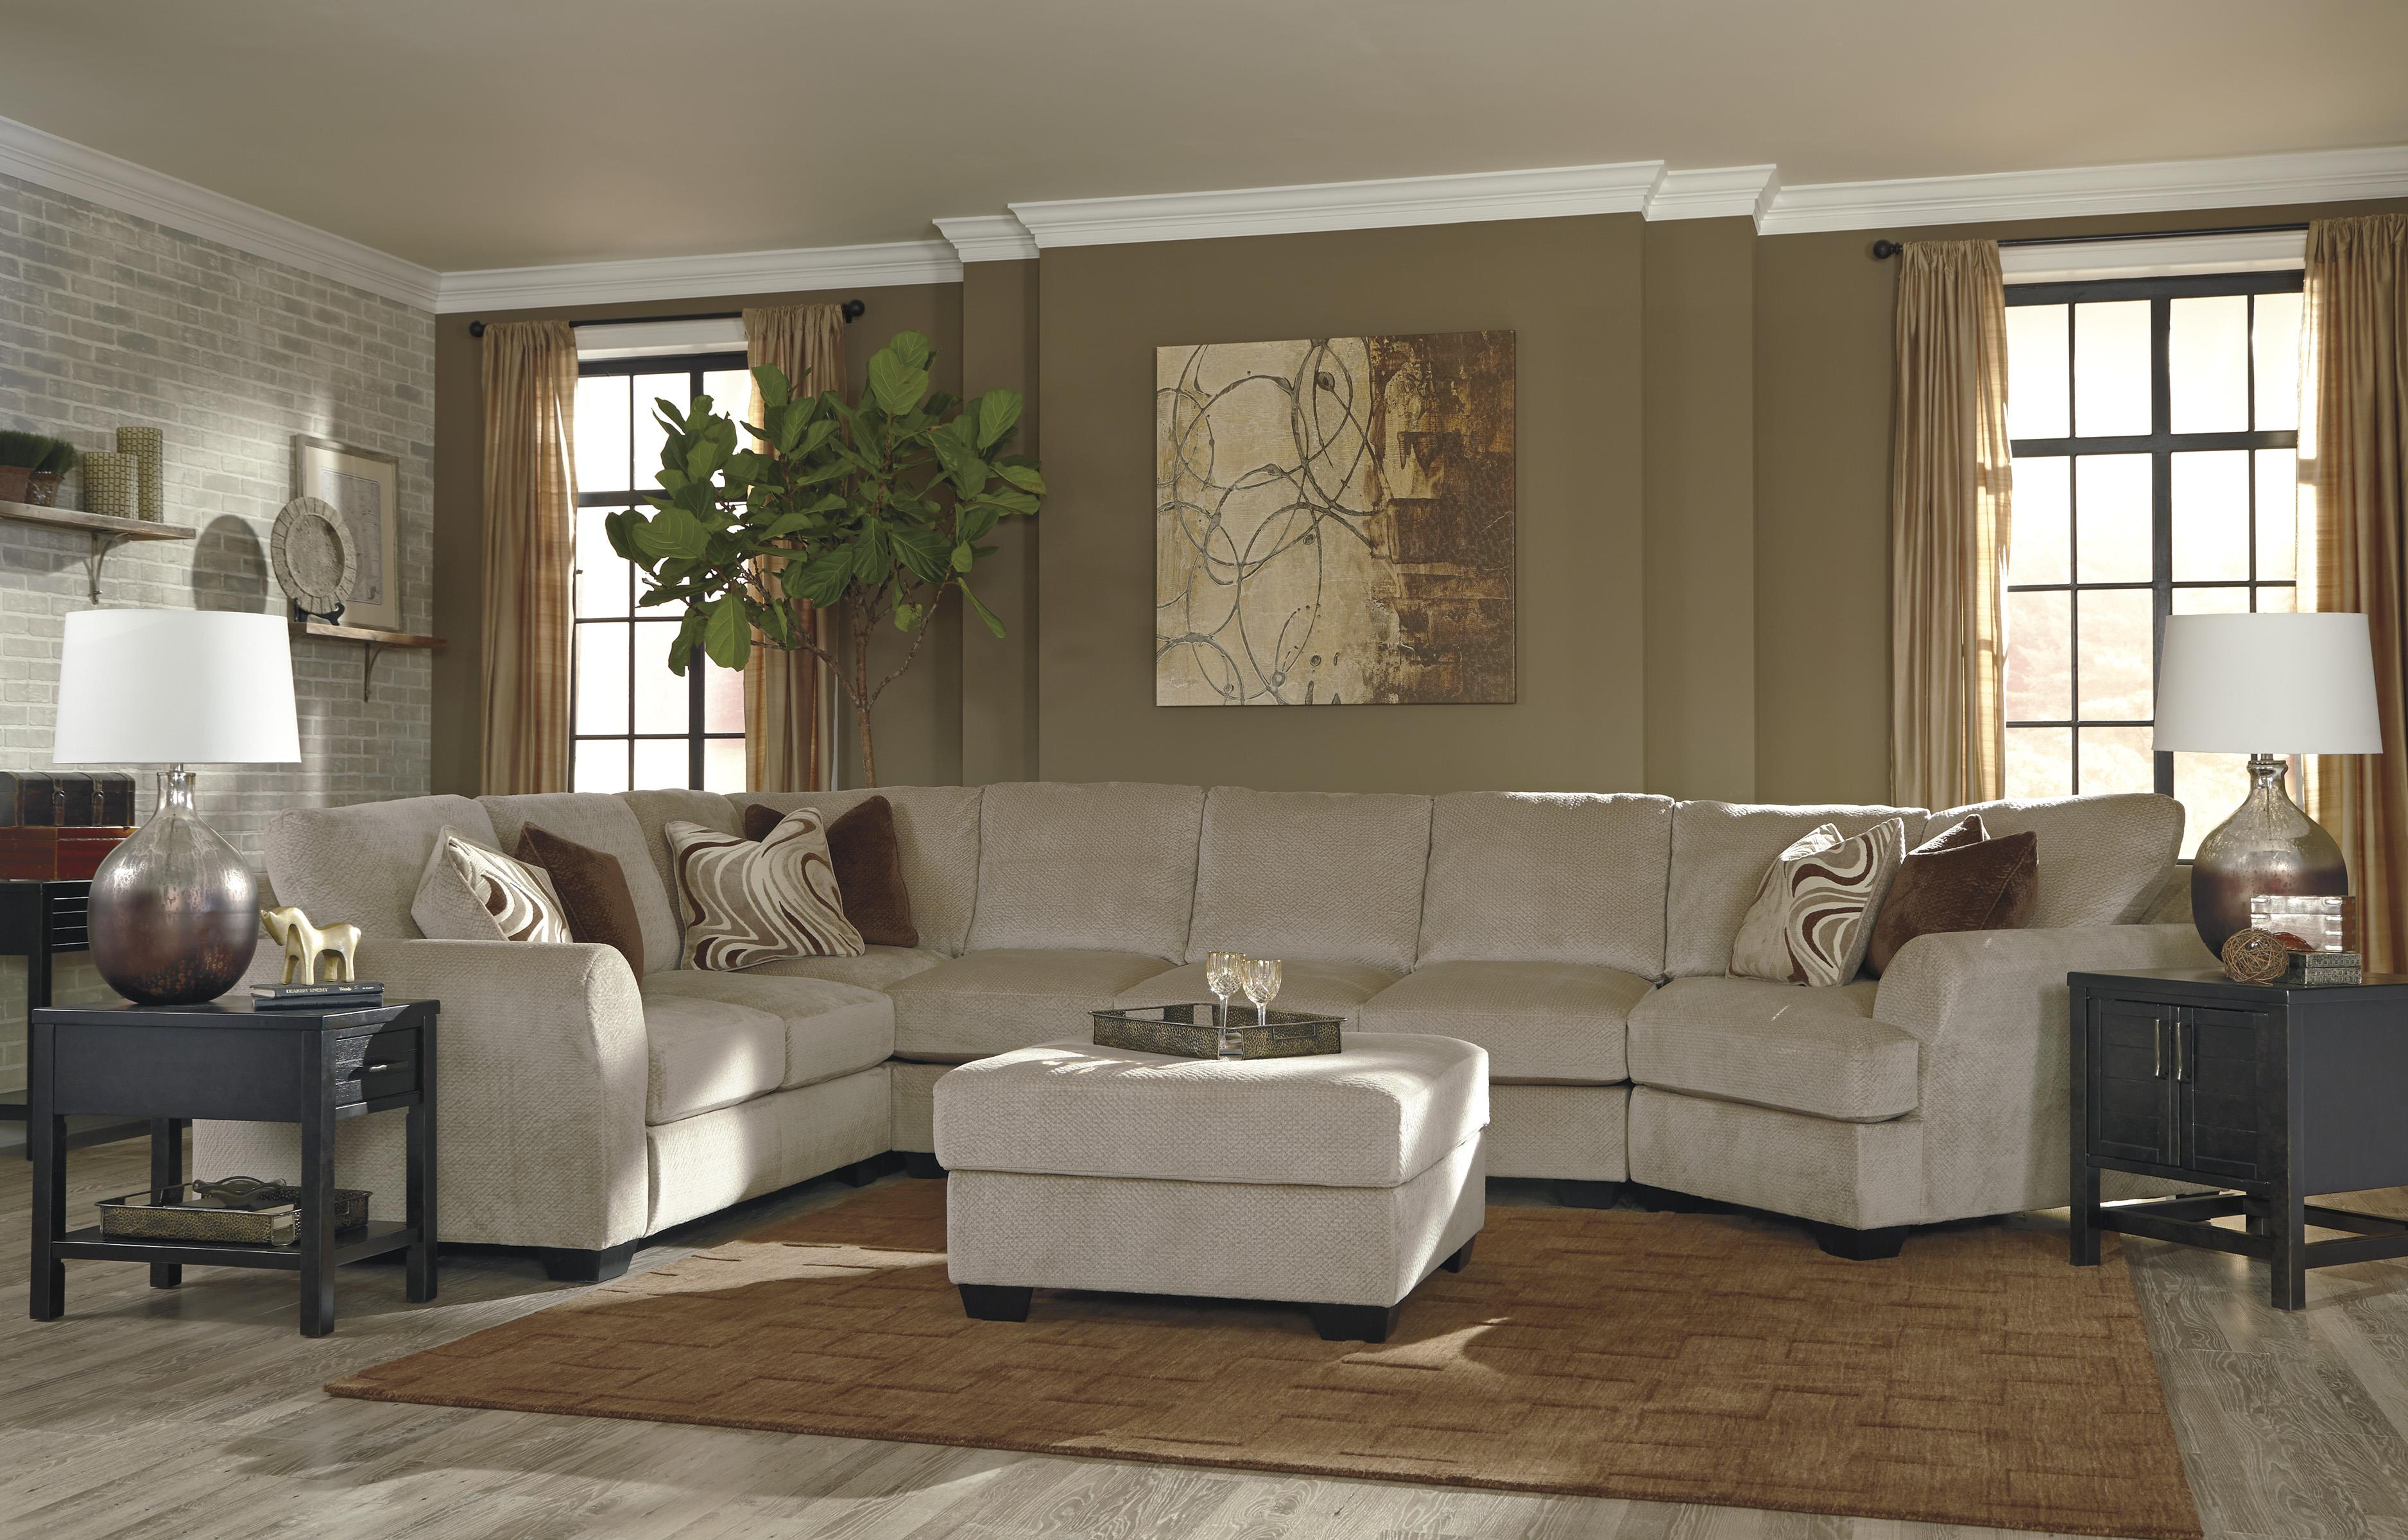 4 Piece Sectional w Armless Sofa & Right Cuddler by Benchcraft